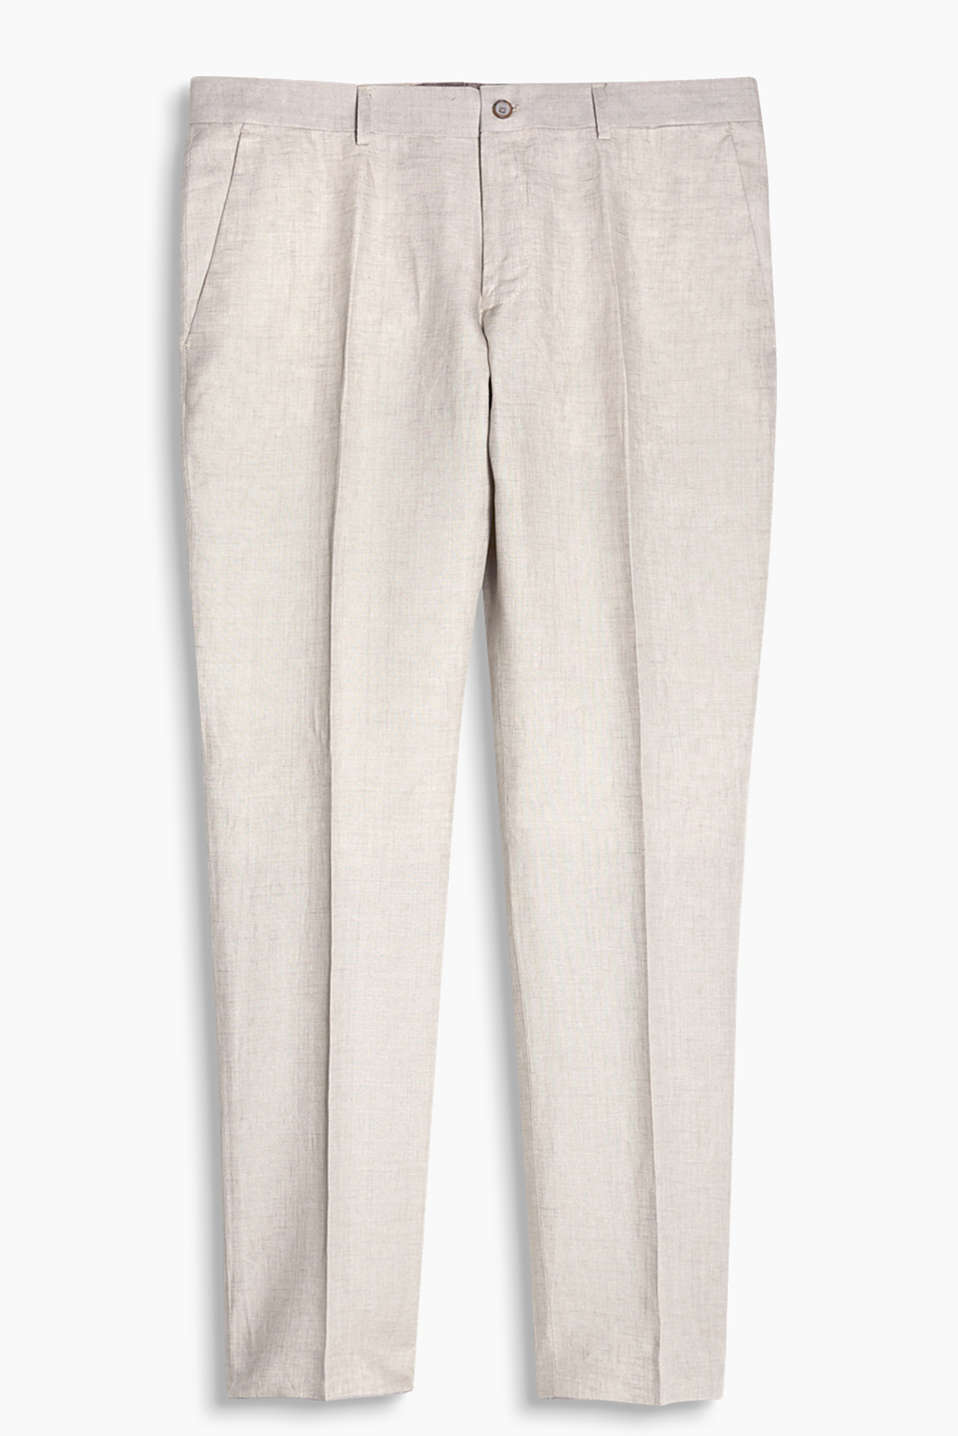 Suit trousers made of cool pure linen in a summery style